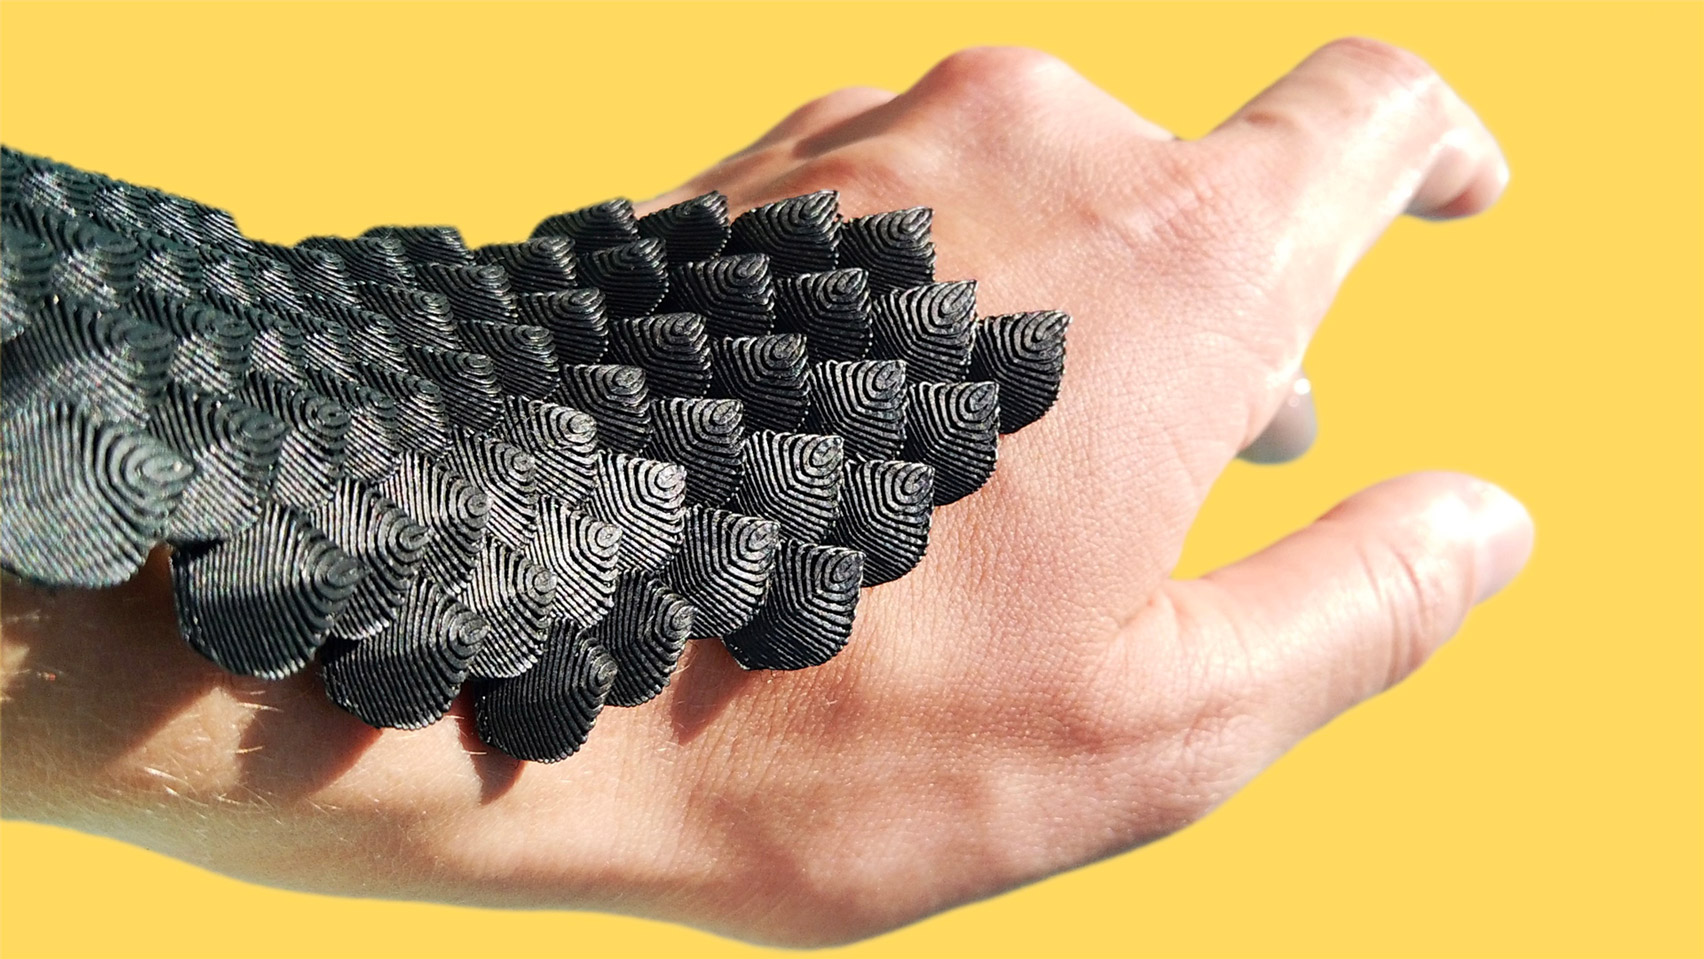 Scaled is a flexible body cast that could protect athletes from injuries